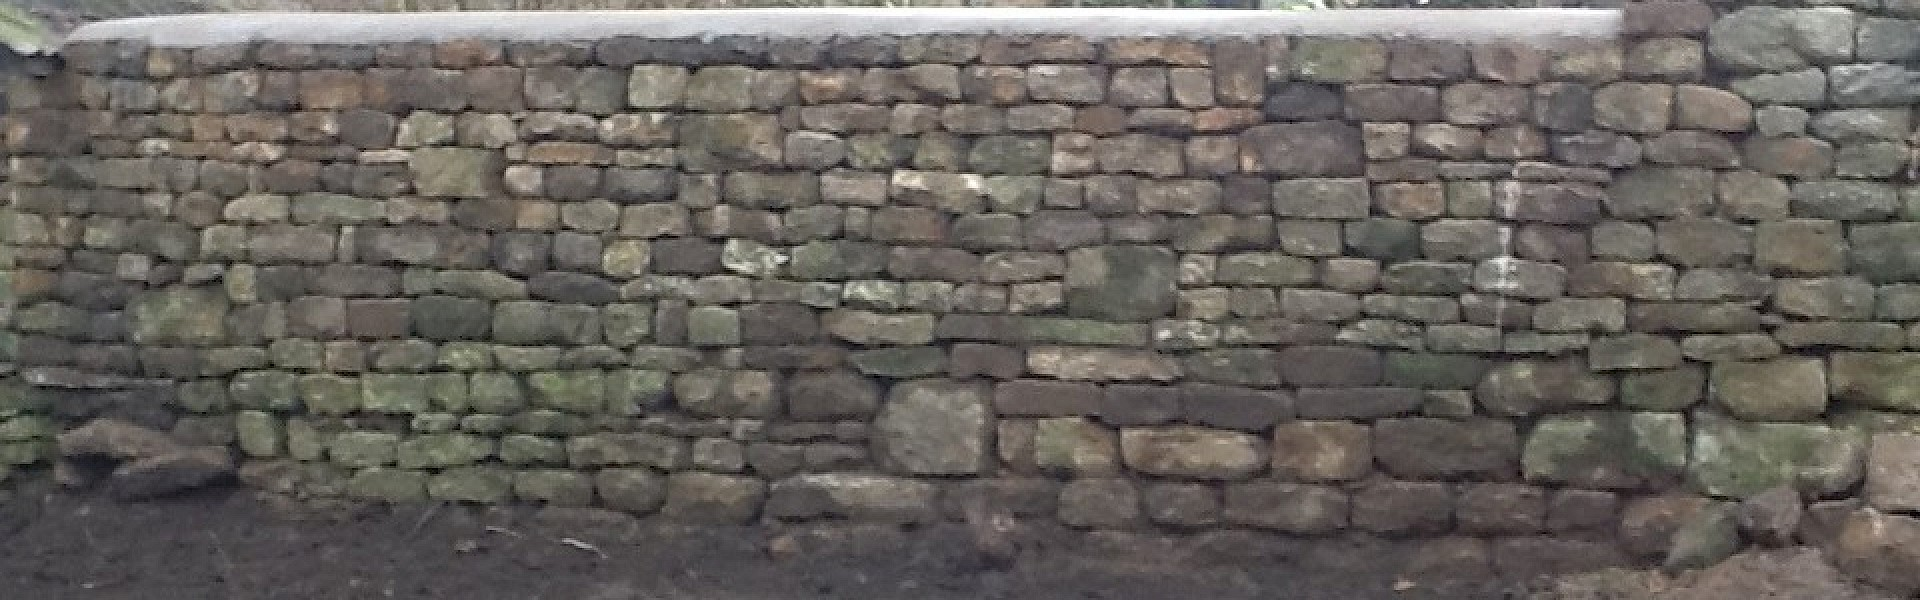 Dry Stone Walling in North Newington